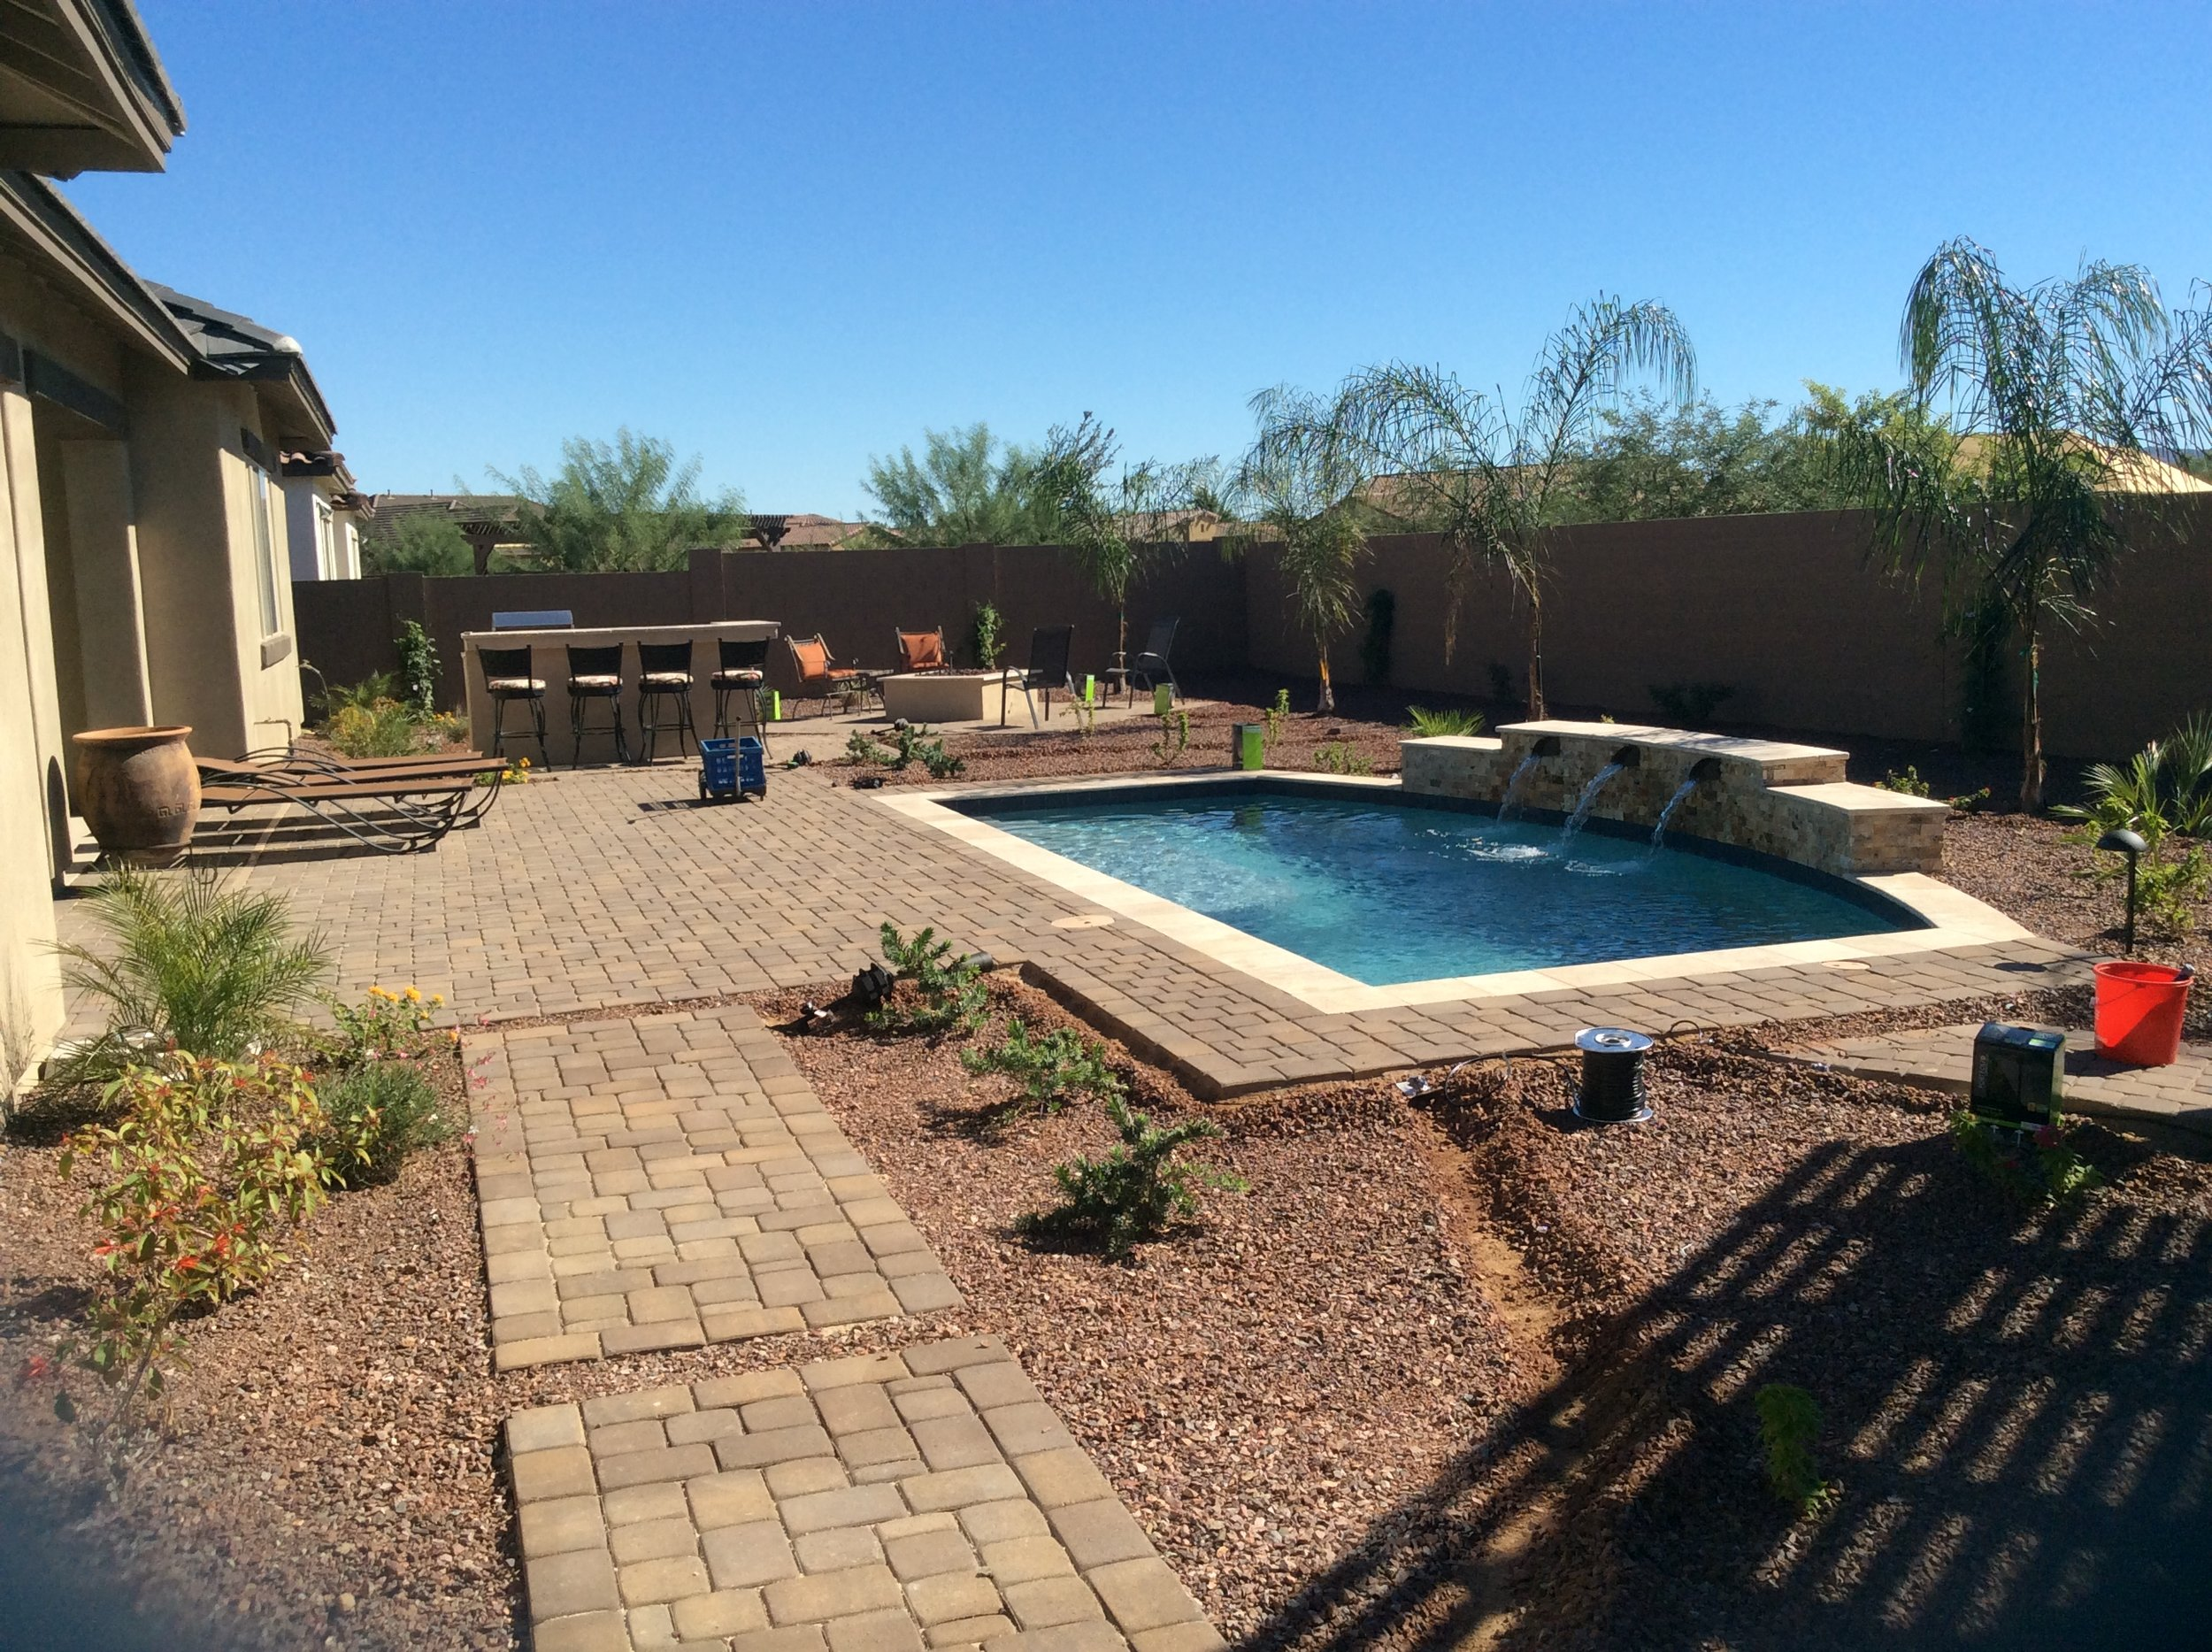 Lemay Pool and Paver Patio.jpg